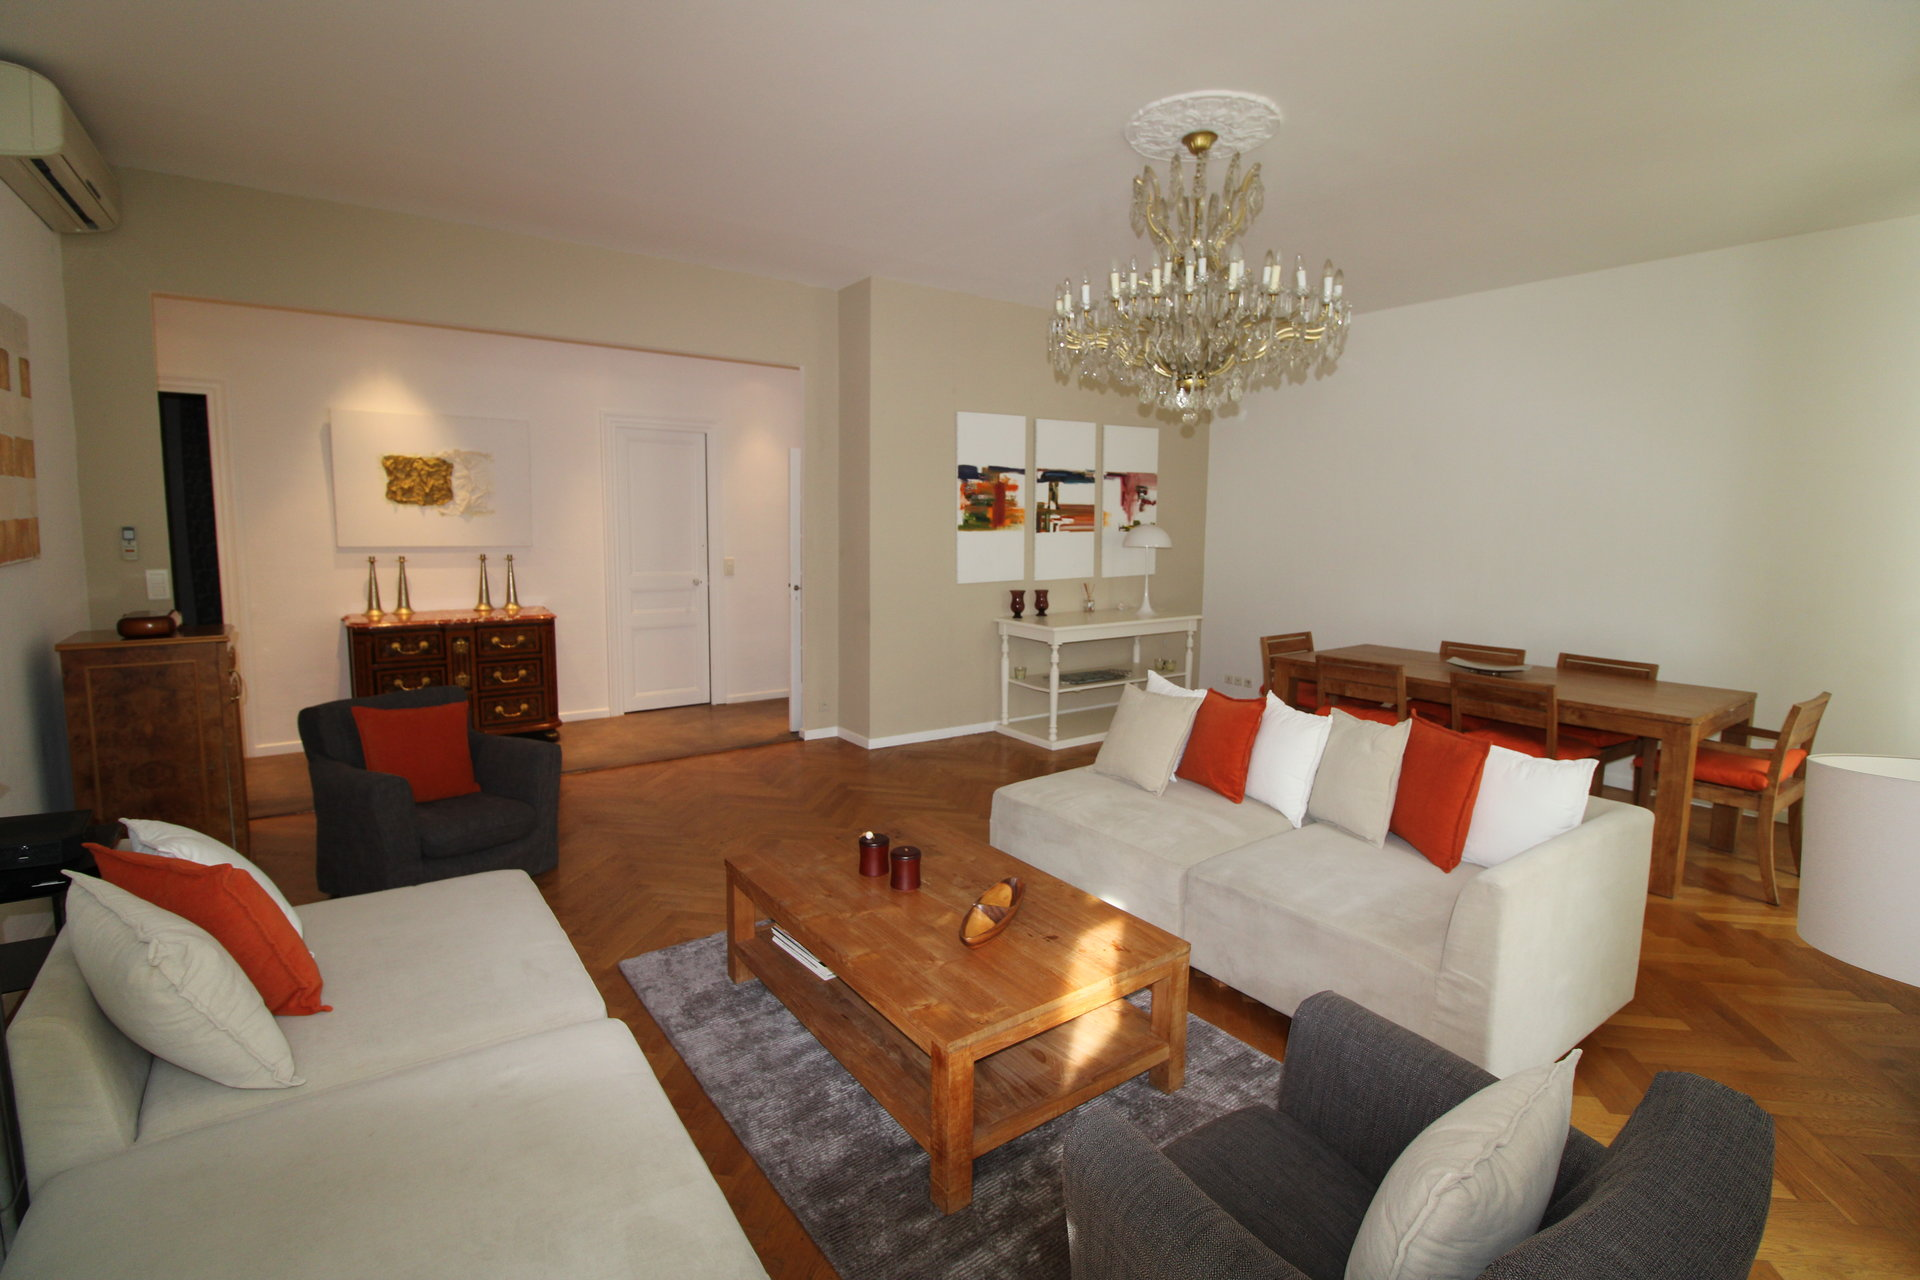 APARTMENT LOCATED AT FIVE MINUTS FROM THE EXHIBITION CENTER AND FROM THE BEACH.